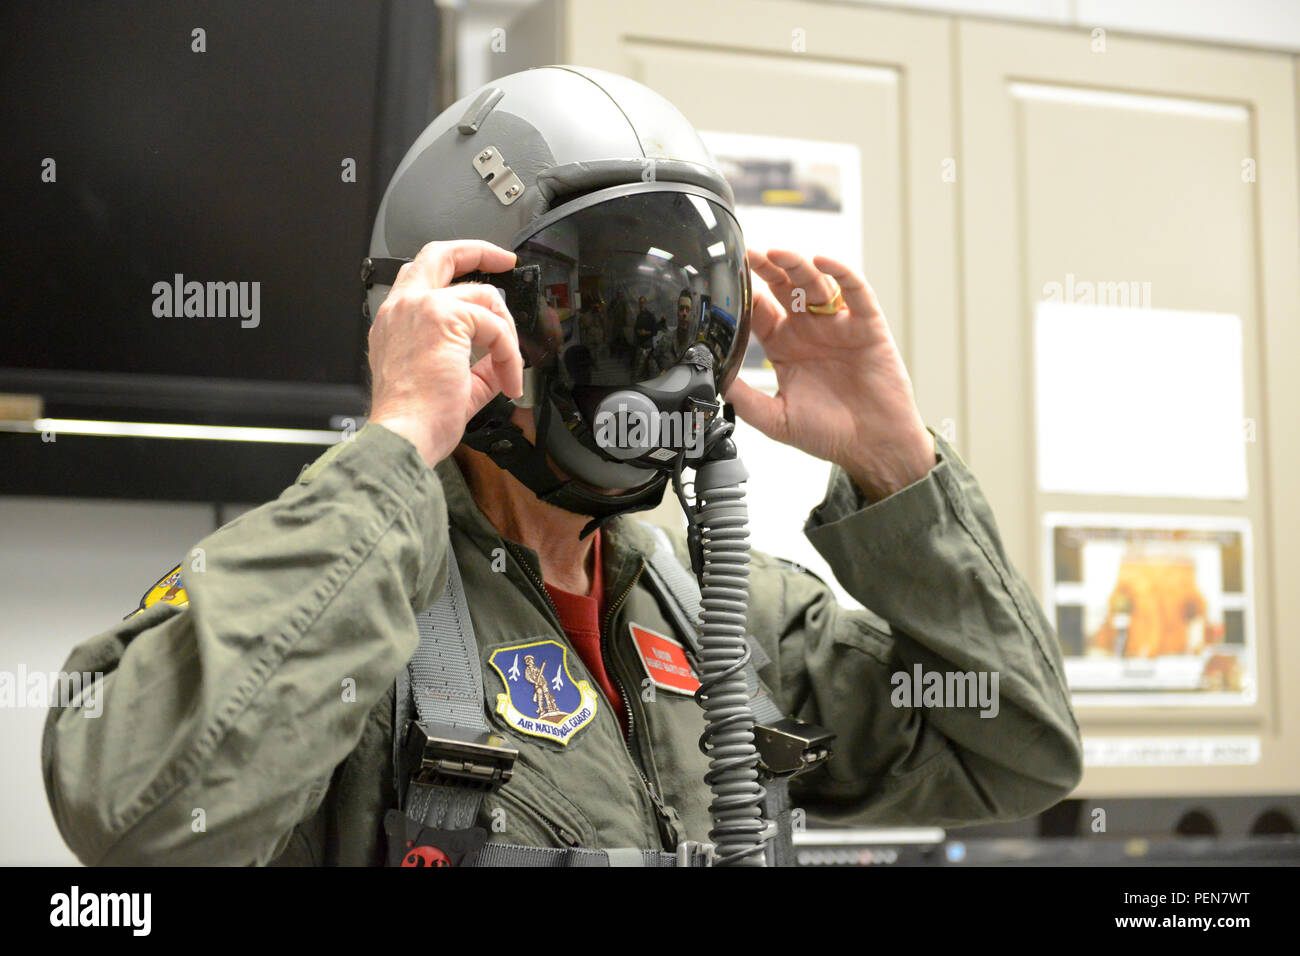 138th Fw Stock Photos & 138th Fw Stock Images - Alamy